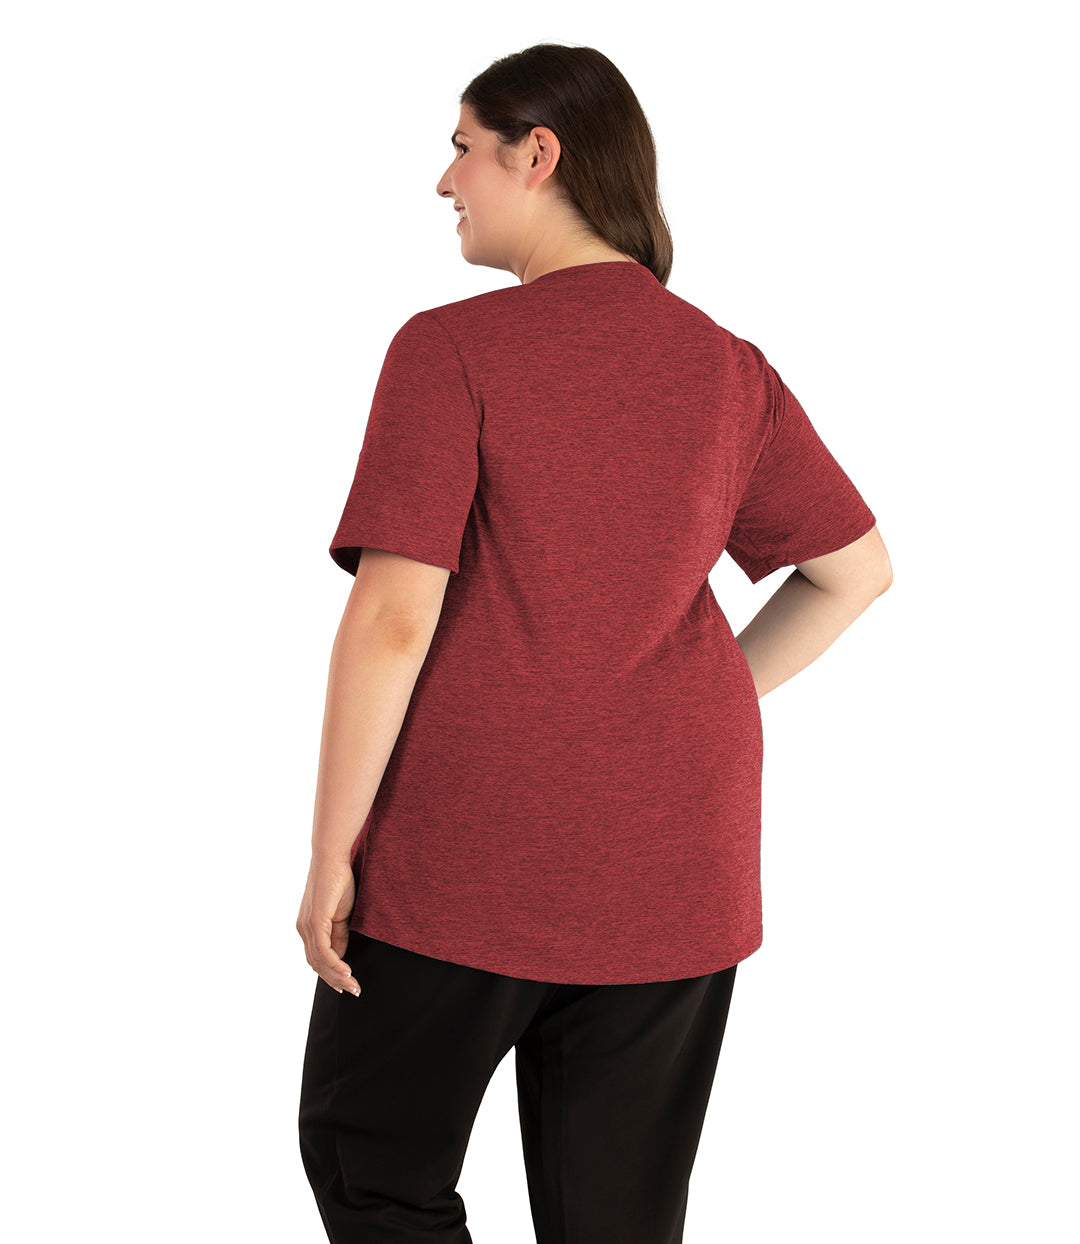 QuikLite Scoop Neck Short Sleeve Top-Tops Short Sleeve-Springtex-XL-Heather Garnet Red-JunoActive